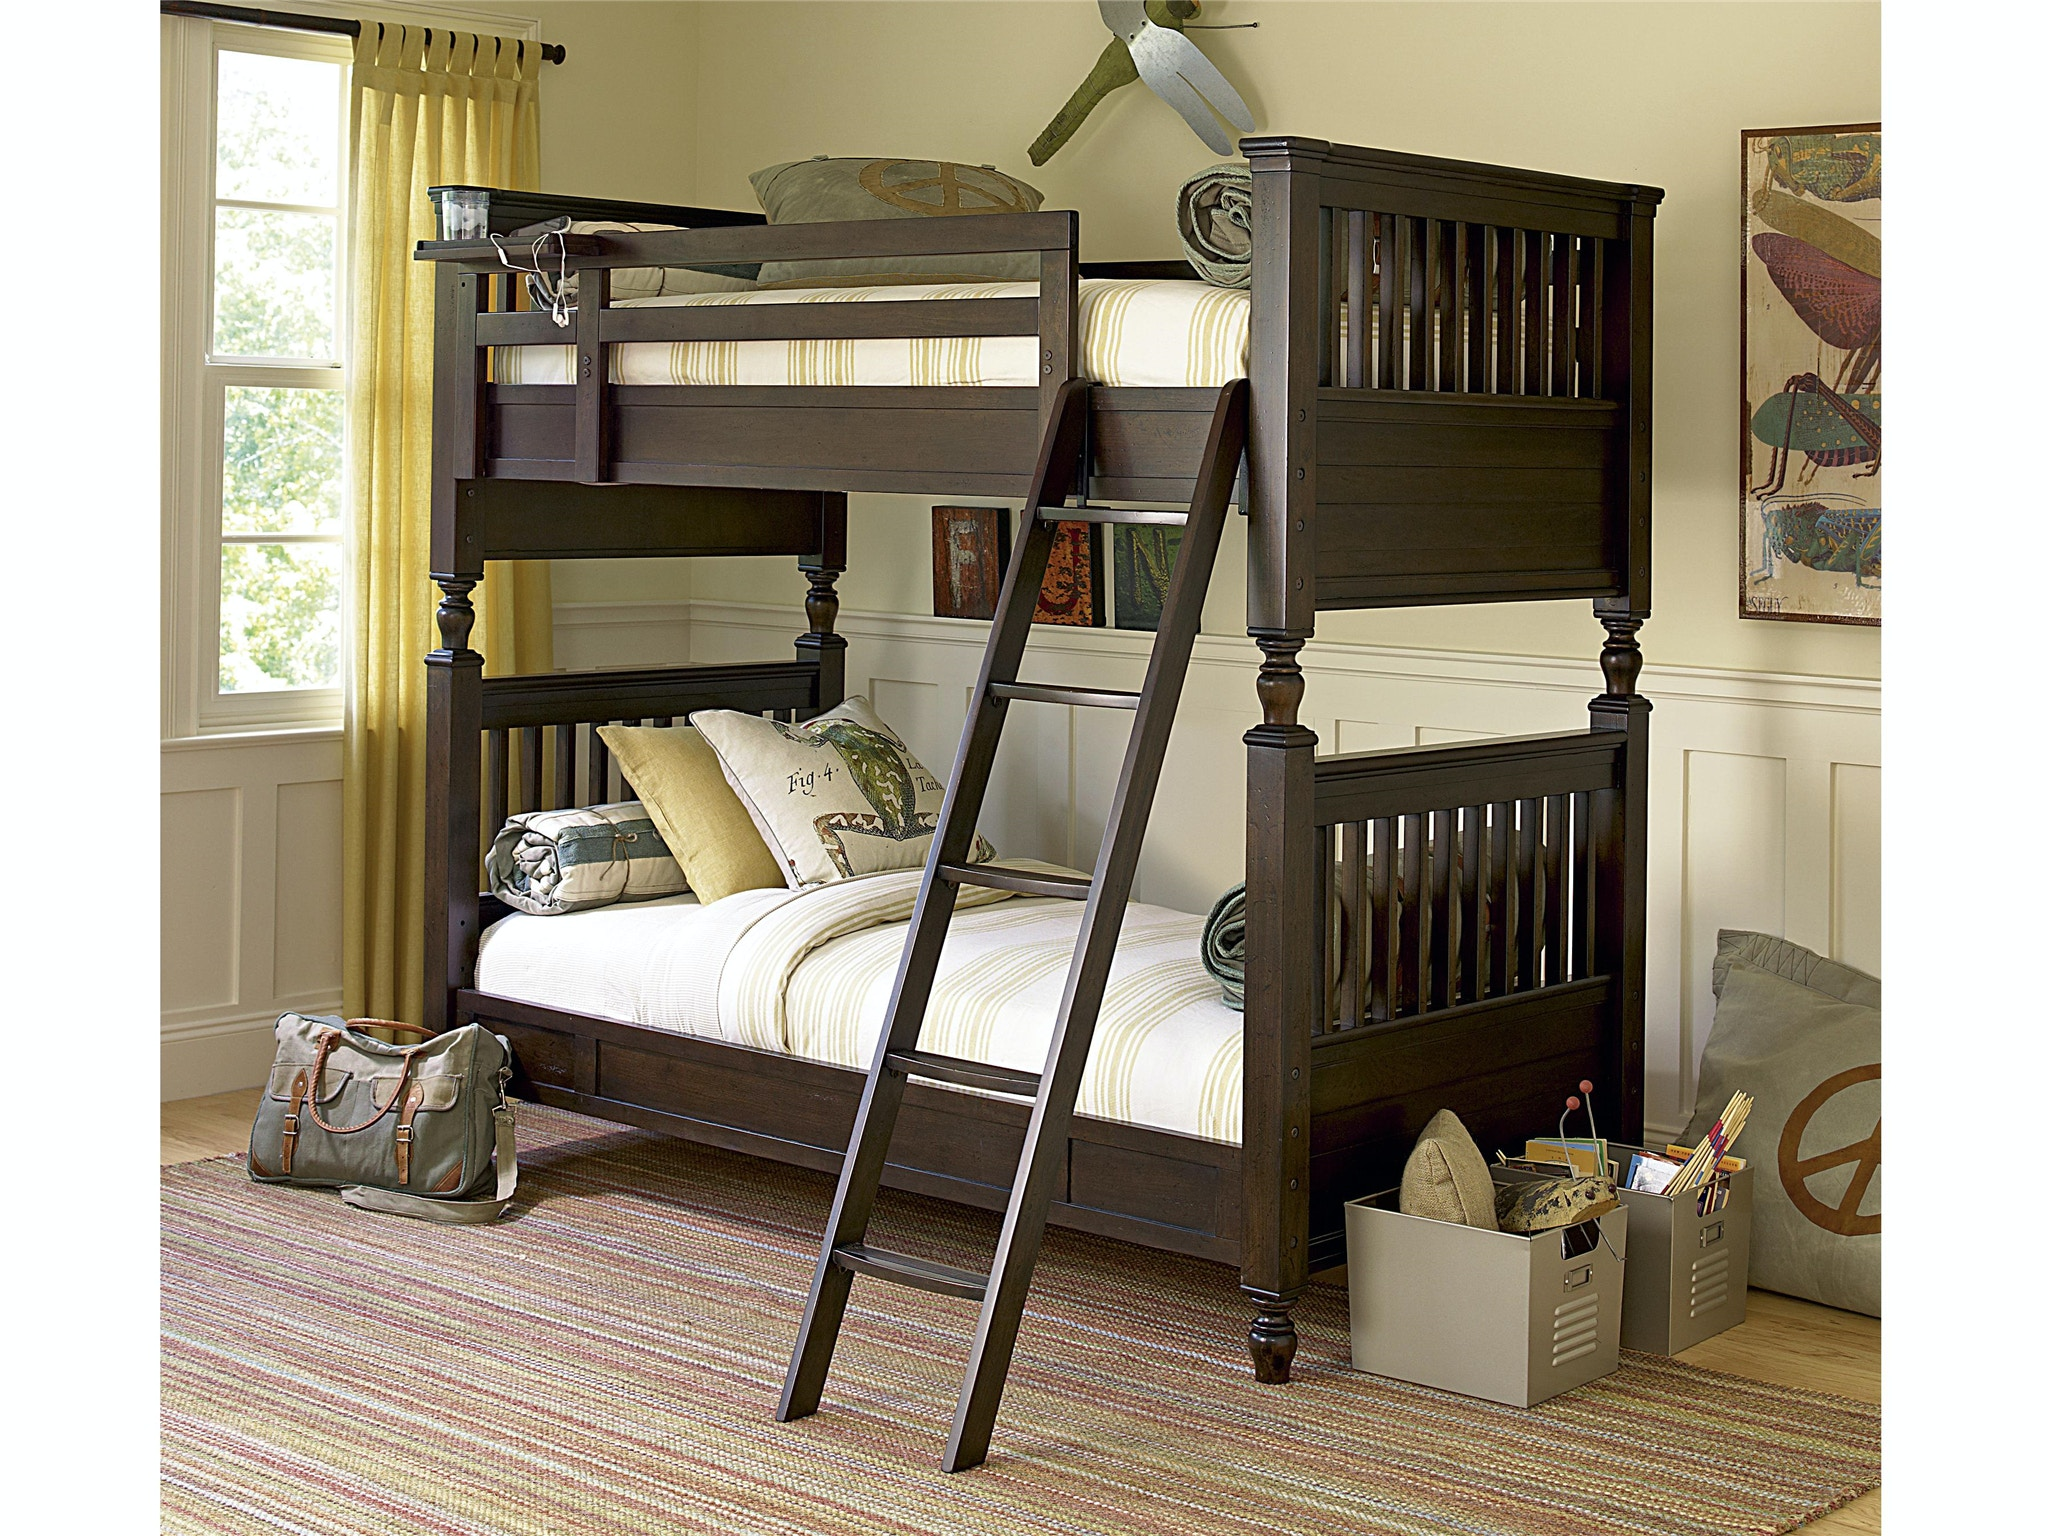 Smartstuff by Universal Guys Bunk Bed Full